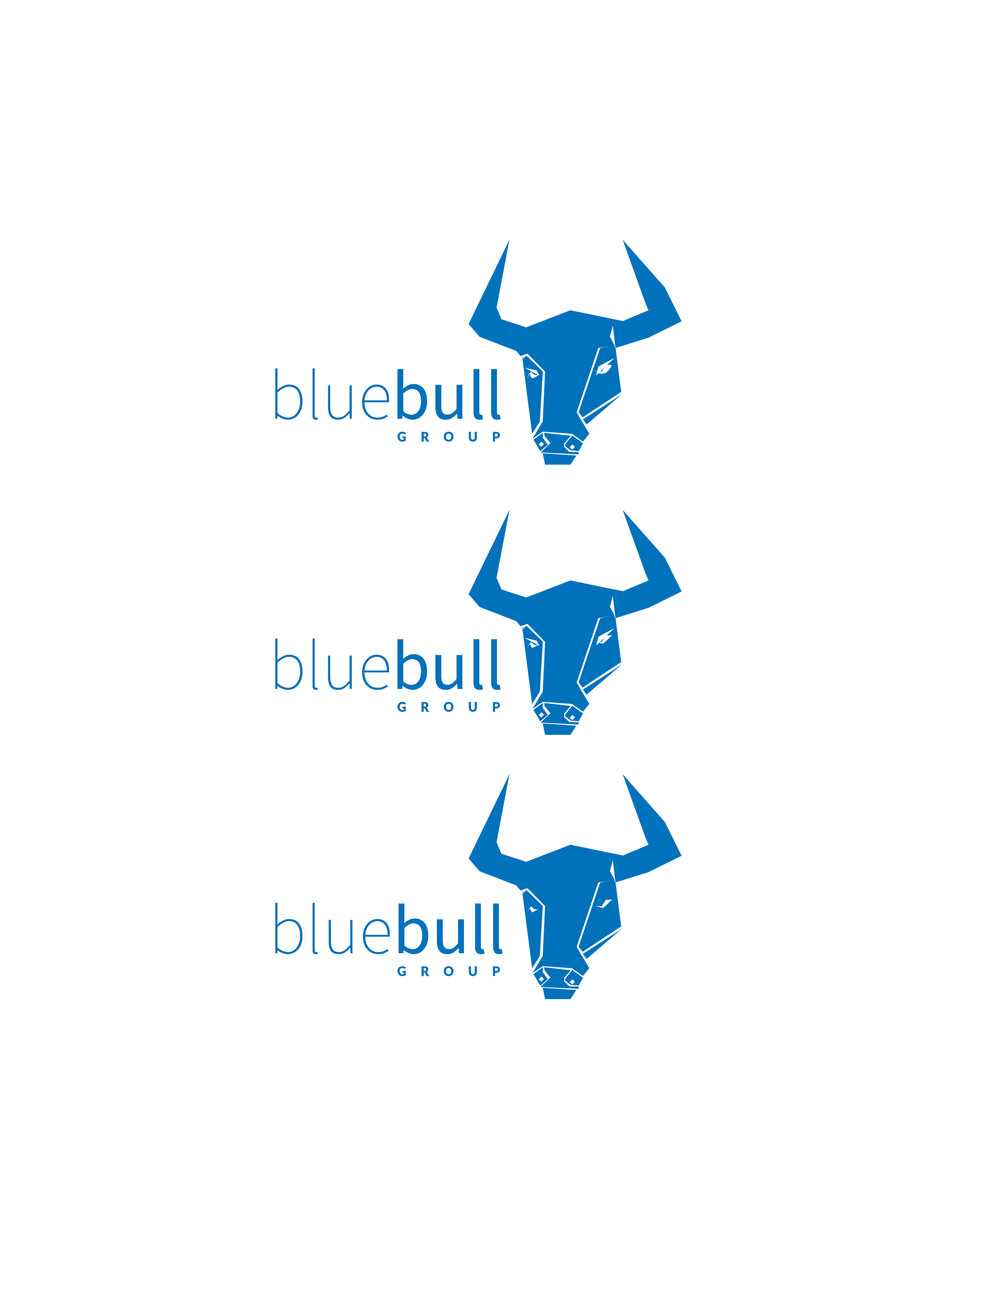 bluebull-Recovered.jpg